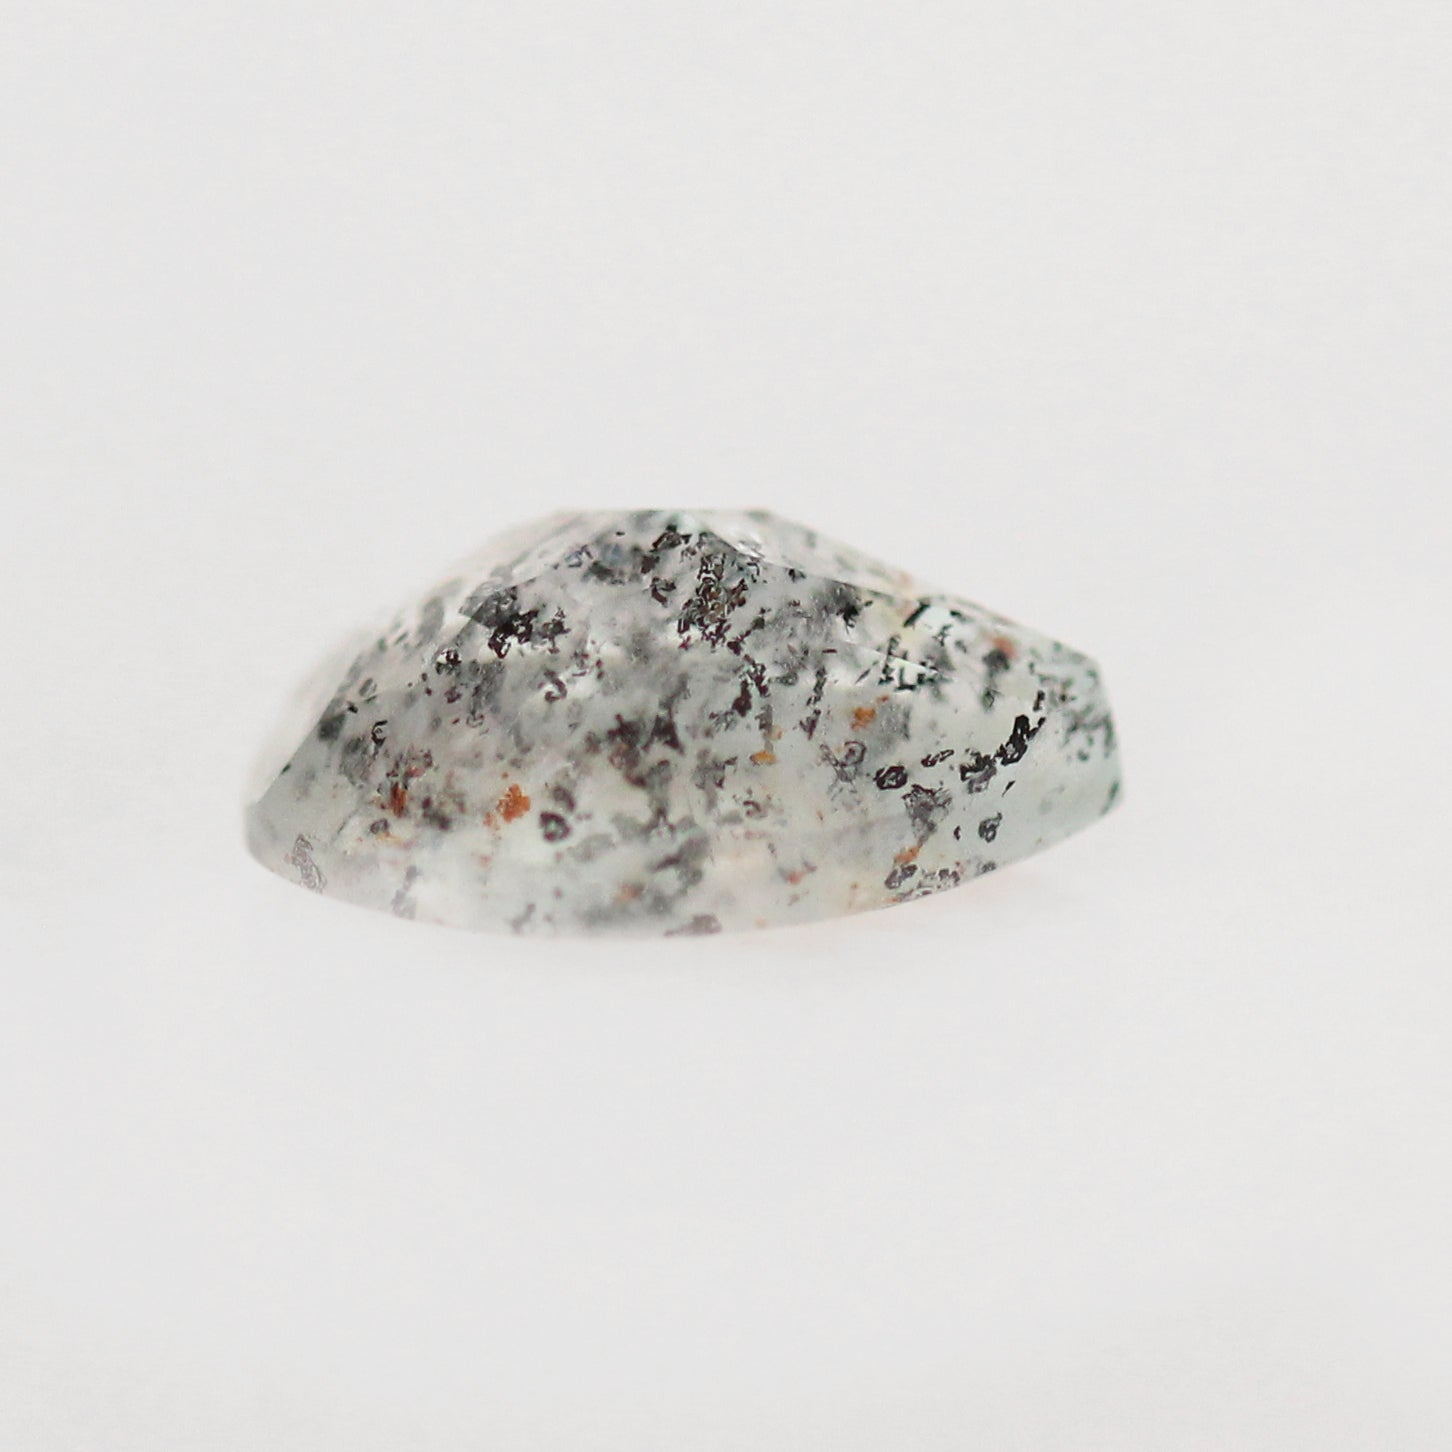 2.10 Carat Pear Moss Aquamarine-Inventory Code PRMA210 - Celestial Diamonds ® by Midwinter Co.